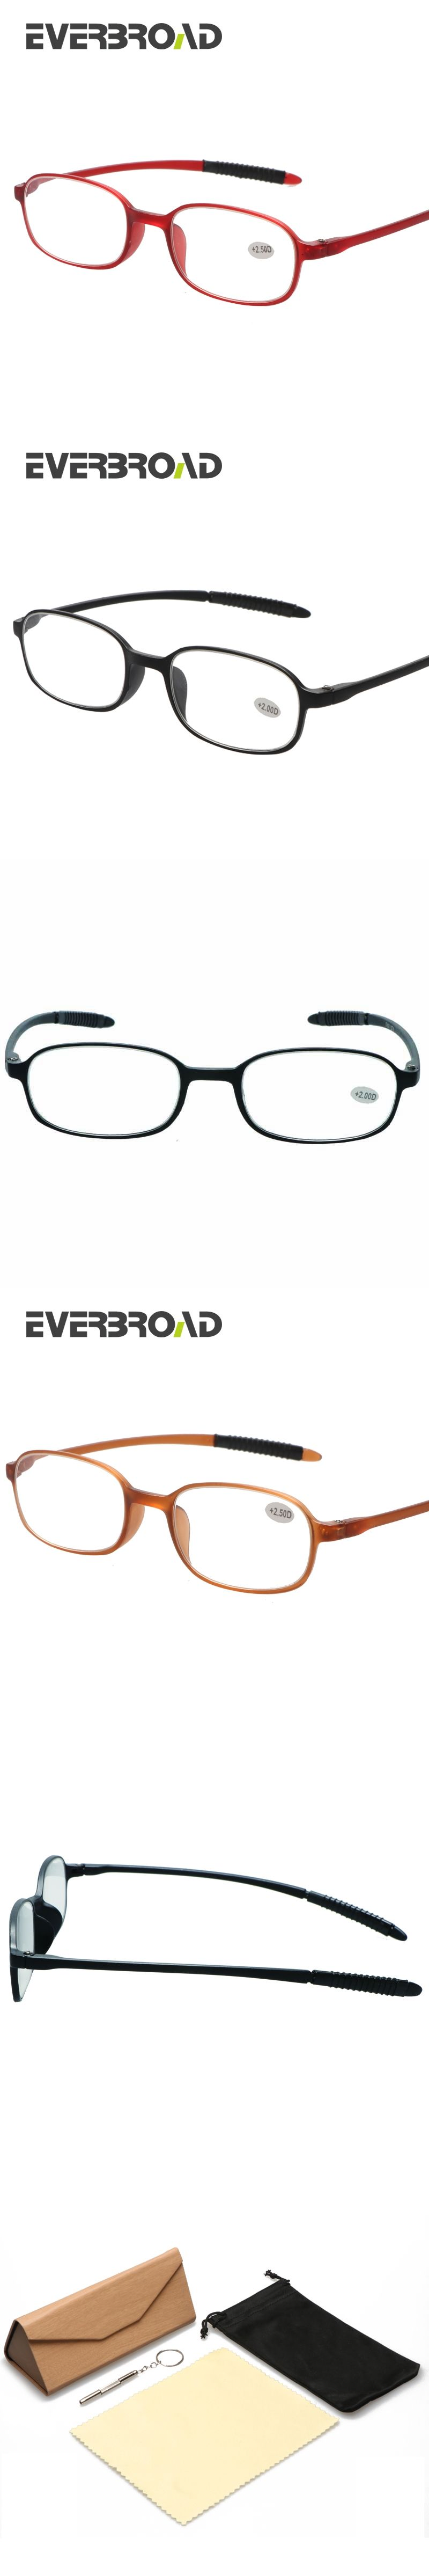 e4af056aa0 High Quality Reading Glasses TR90 Frame Slim Eyeglasses Multi-Degree For  The Aged Light And